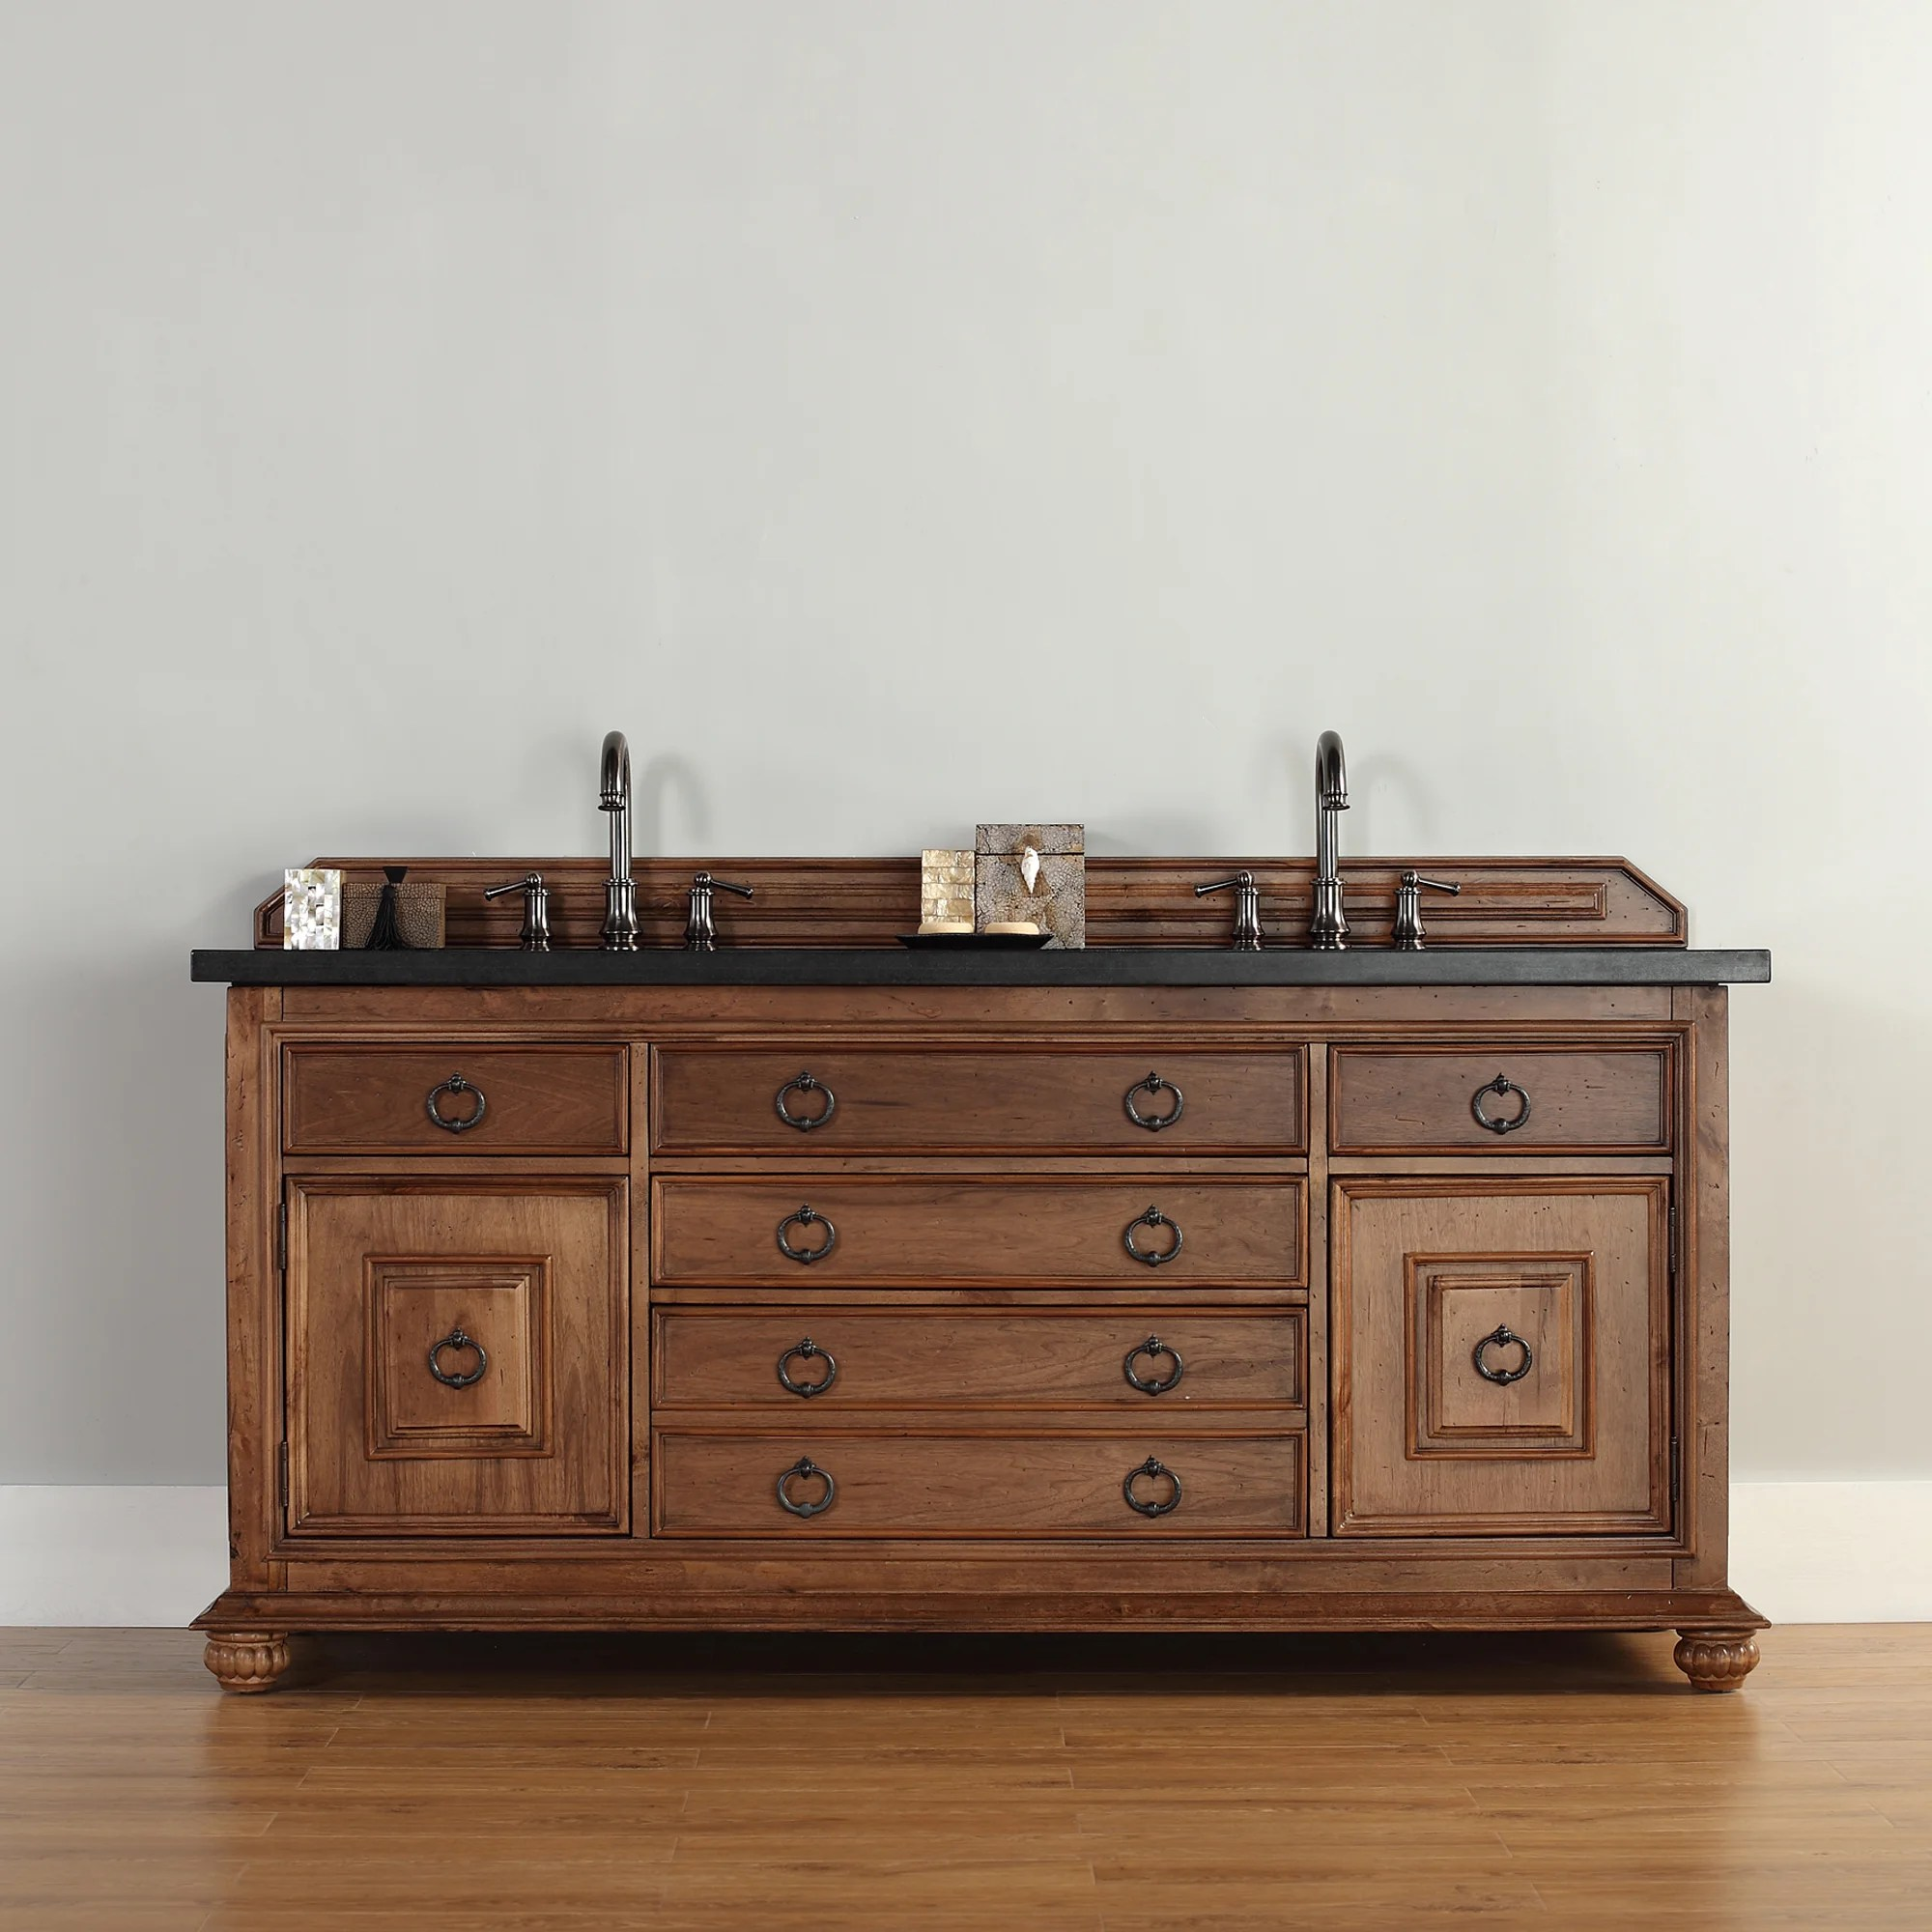 Bathroom Vanity 72 Double Sink Lady 72